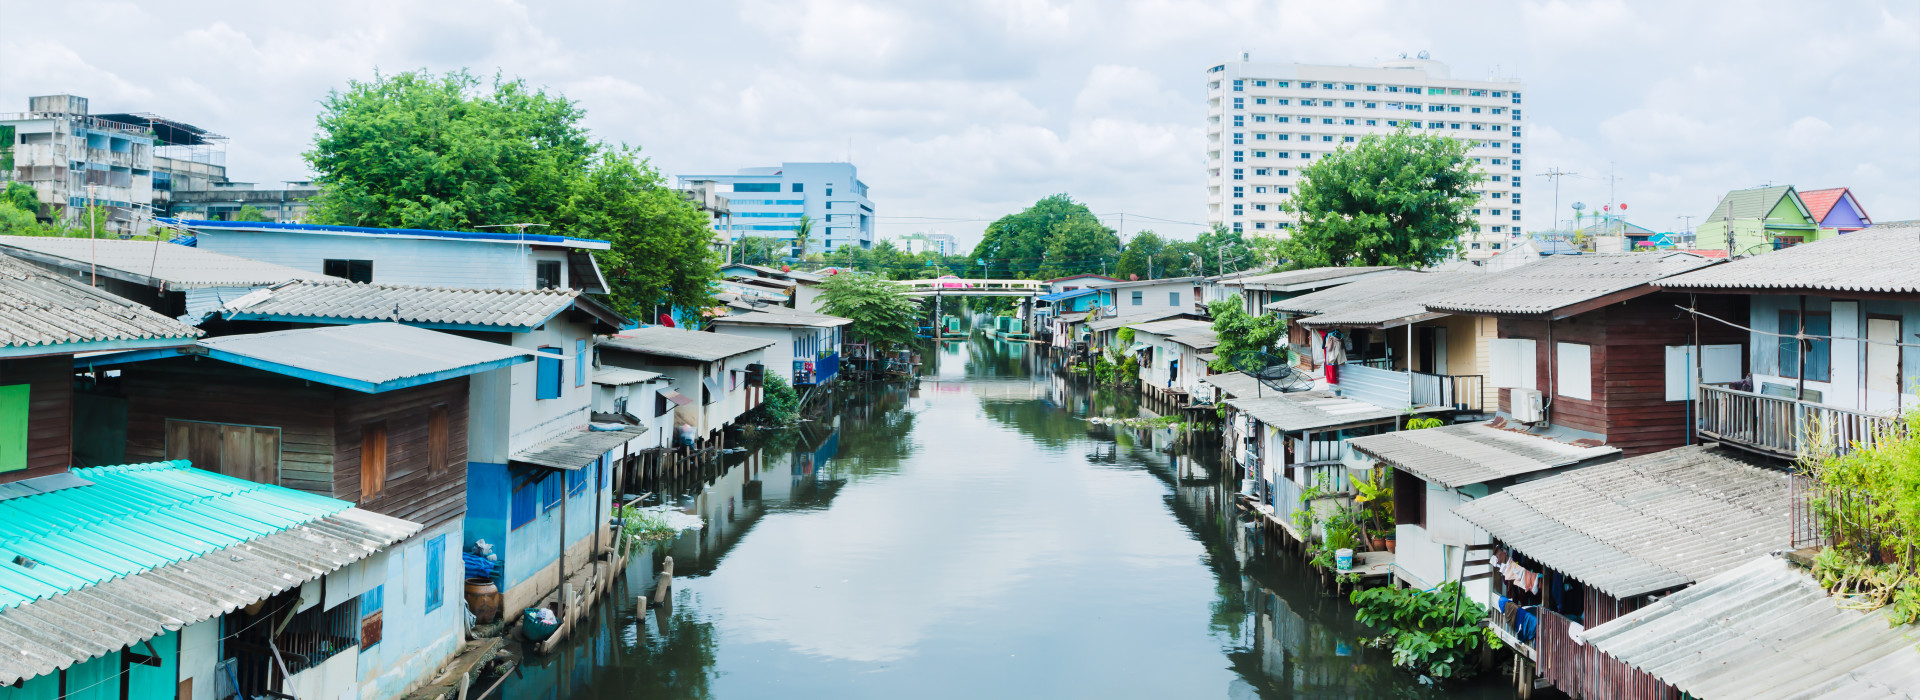 Poor house And the dirty water canal in suburb Thailand. panorama